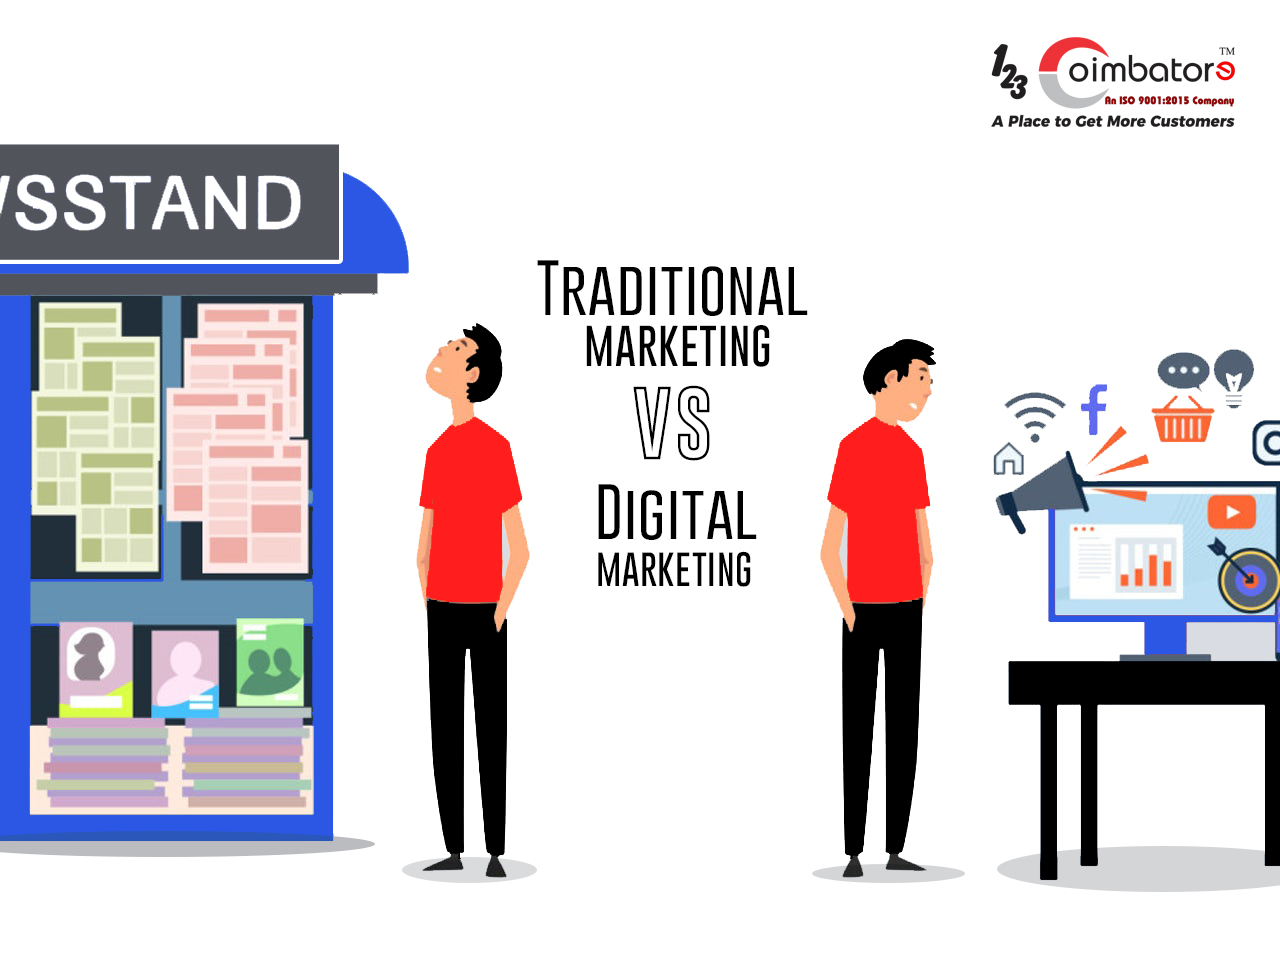 Digital marketing vs Traditional marketing which one is better?